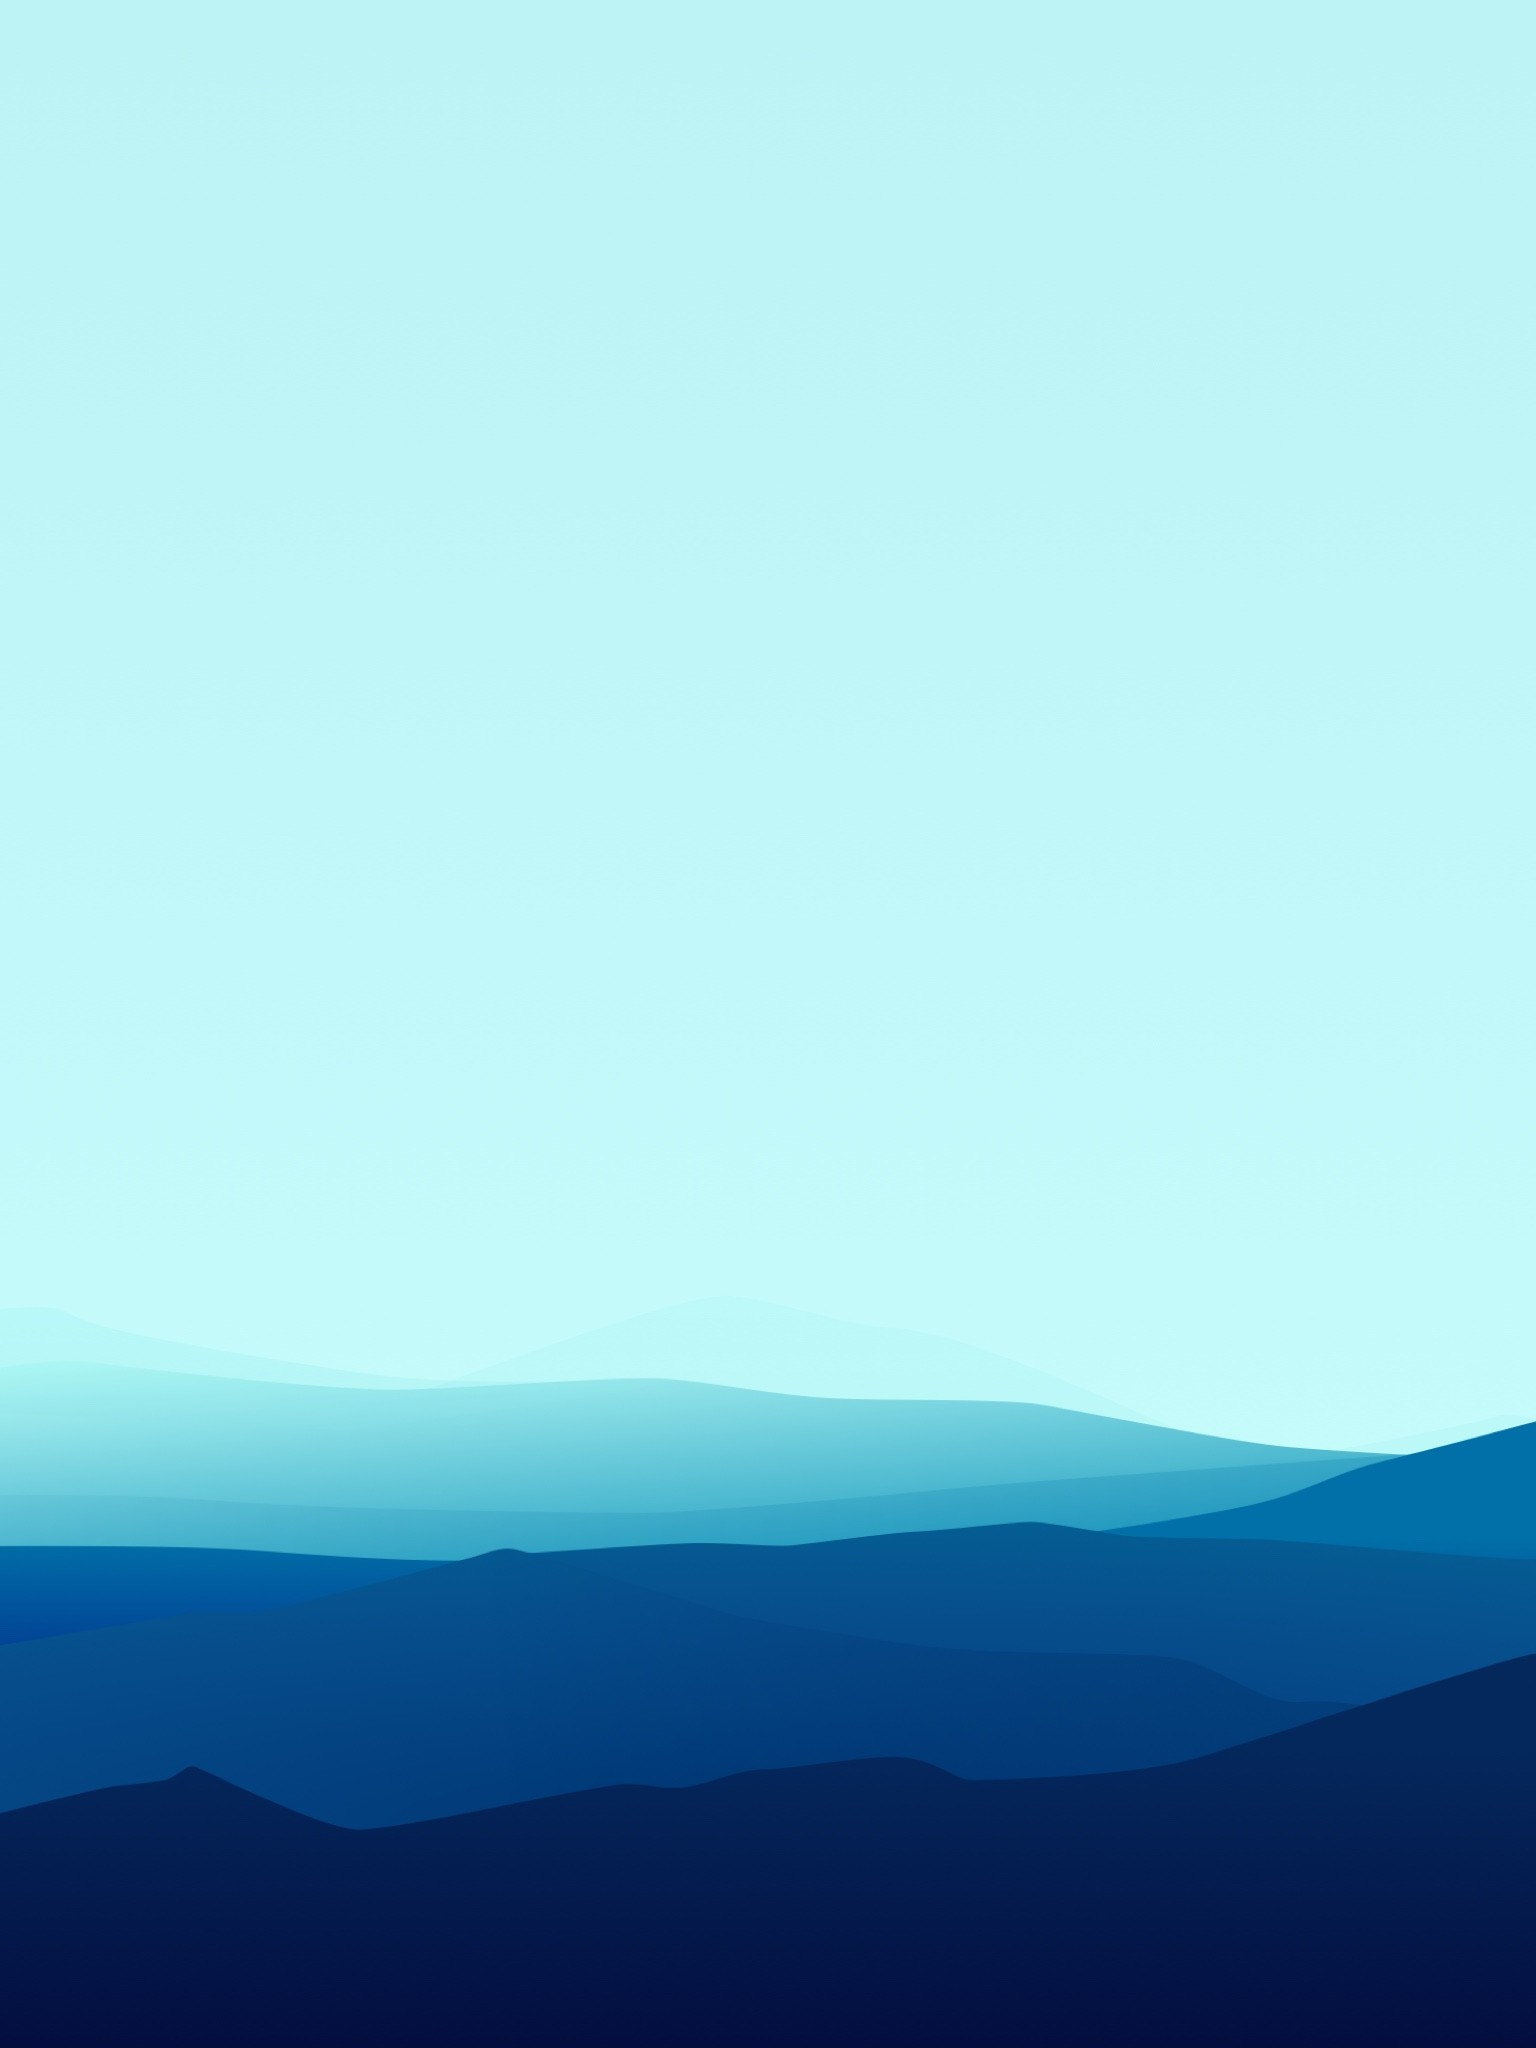 Iphone Minimalist Wallpaper 81 Images